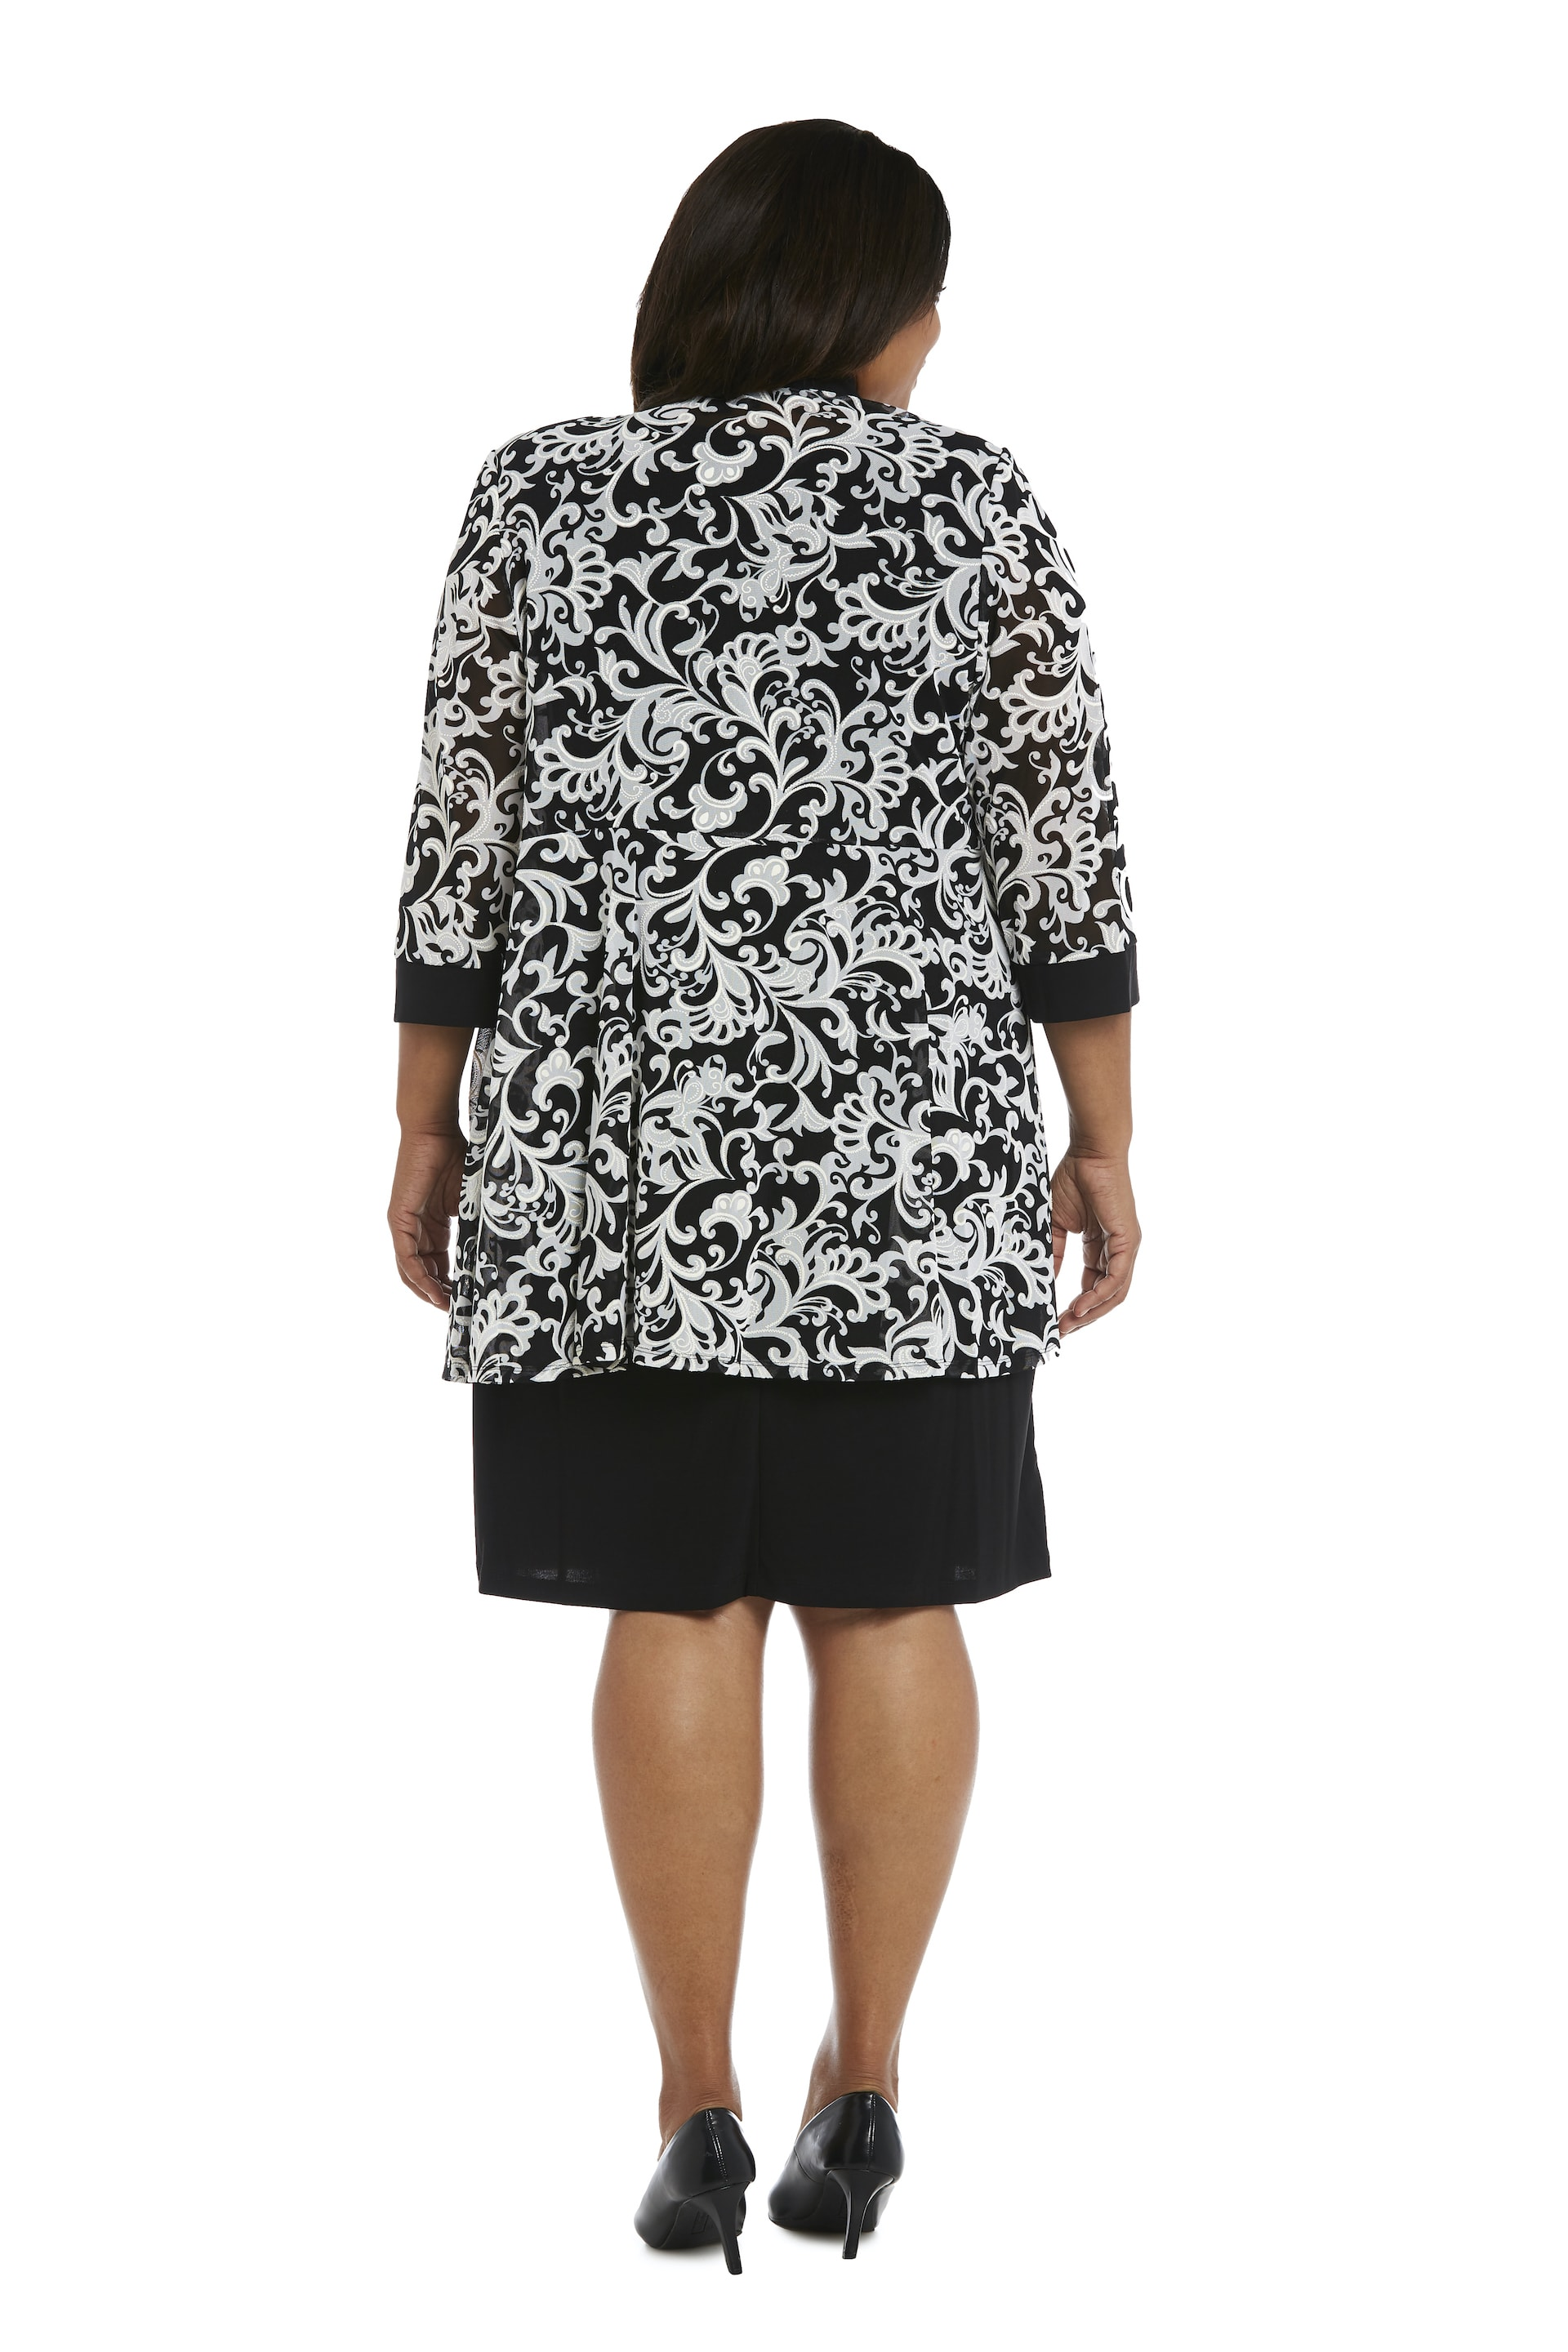 Scroll Mesh  Jacket with Sheath Dress - Black/White - Back